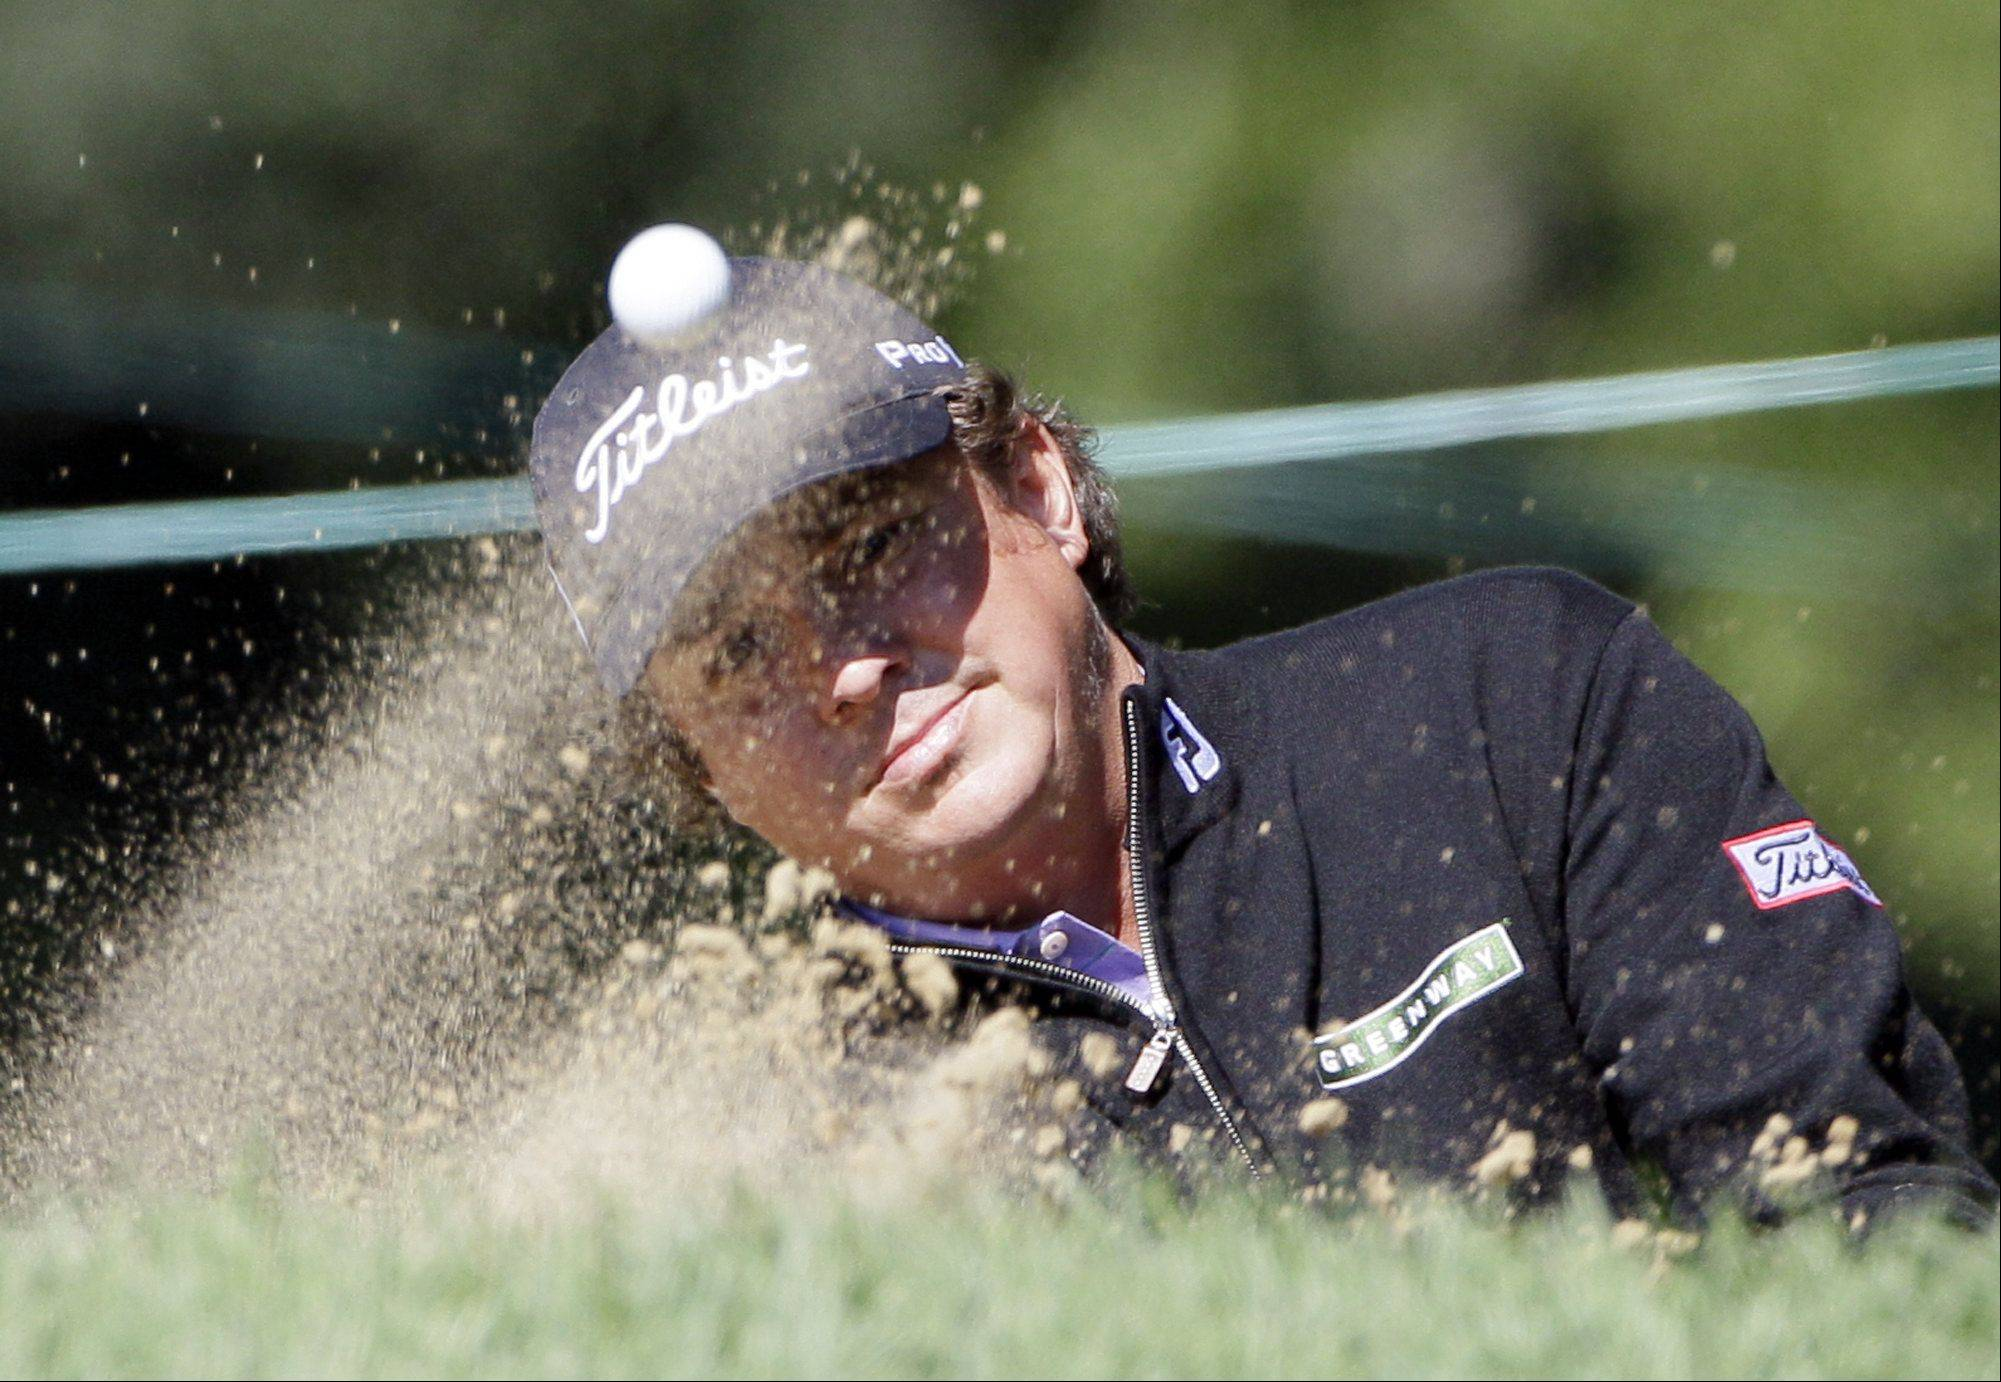 Jason Dufner hits out of the sand trap on the fifth hole during the first round at the BMW Championship golf tournament on Thursday, Sept. 15, 2011, in Lemont, Ill.